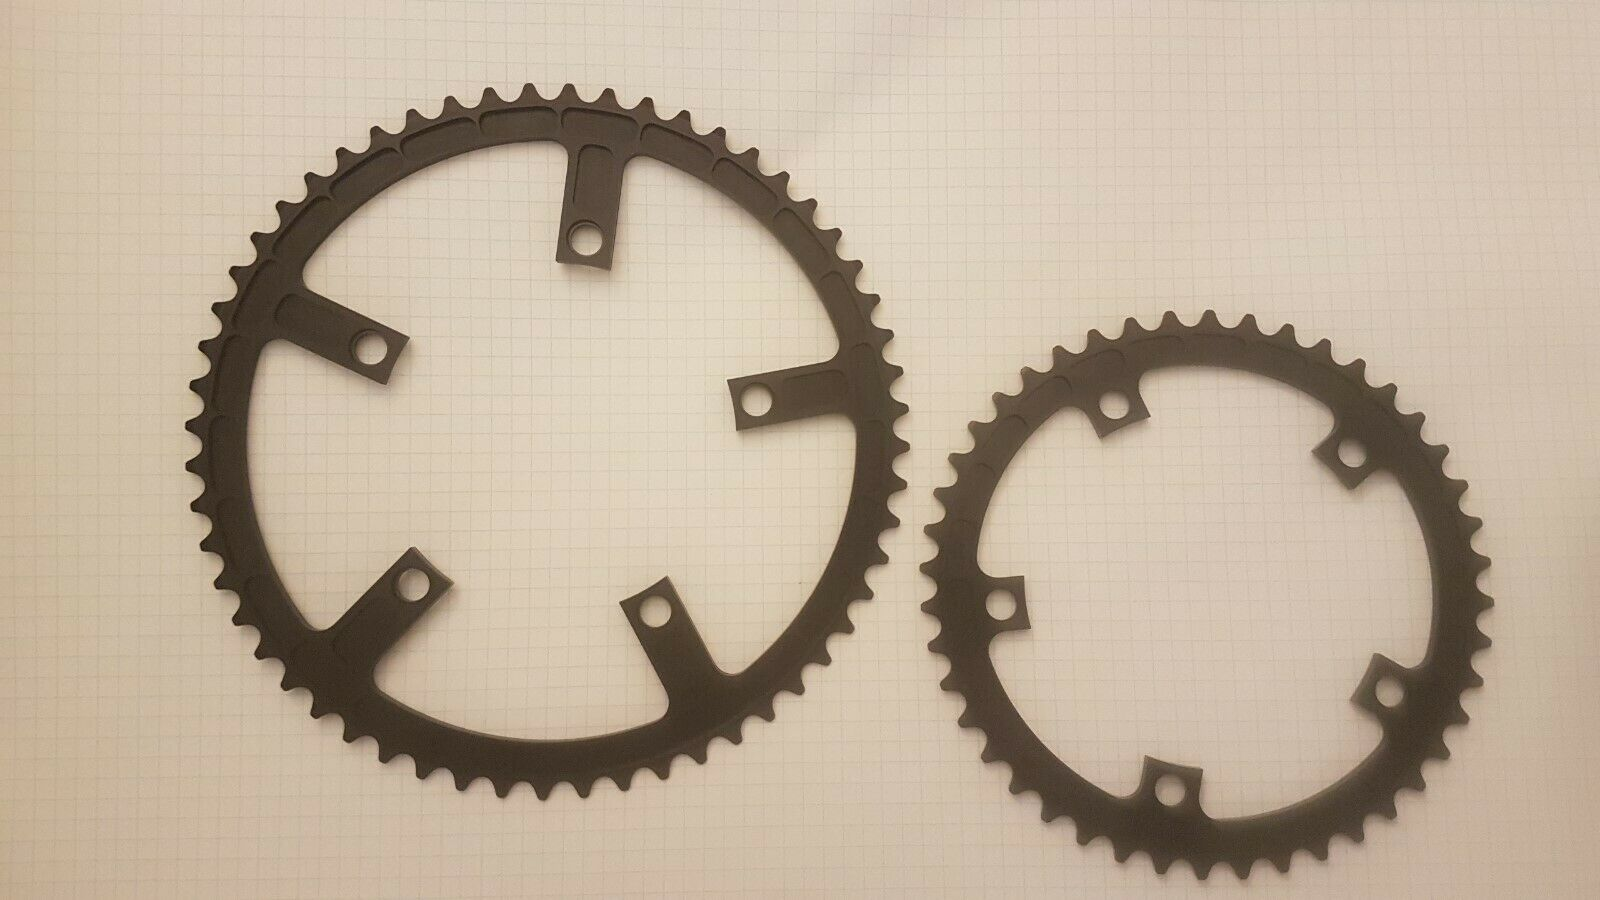 Magic motorcycle coda road chainrings 130bcd 56 44 NOS vintage